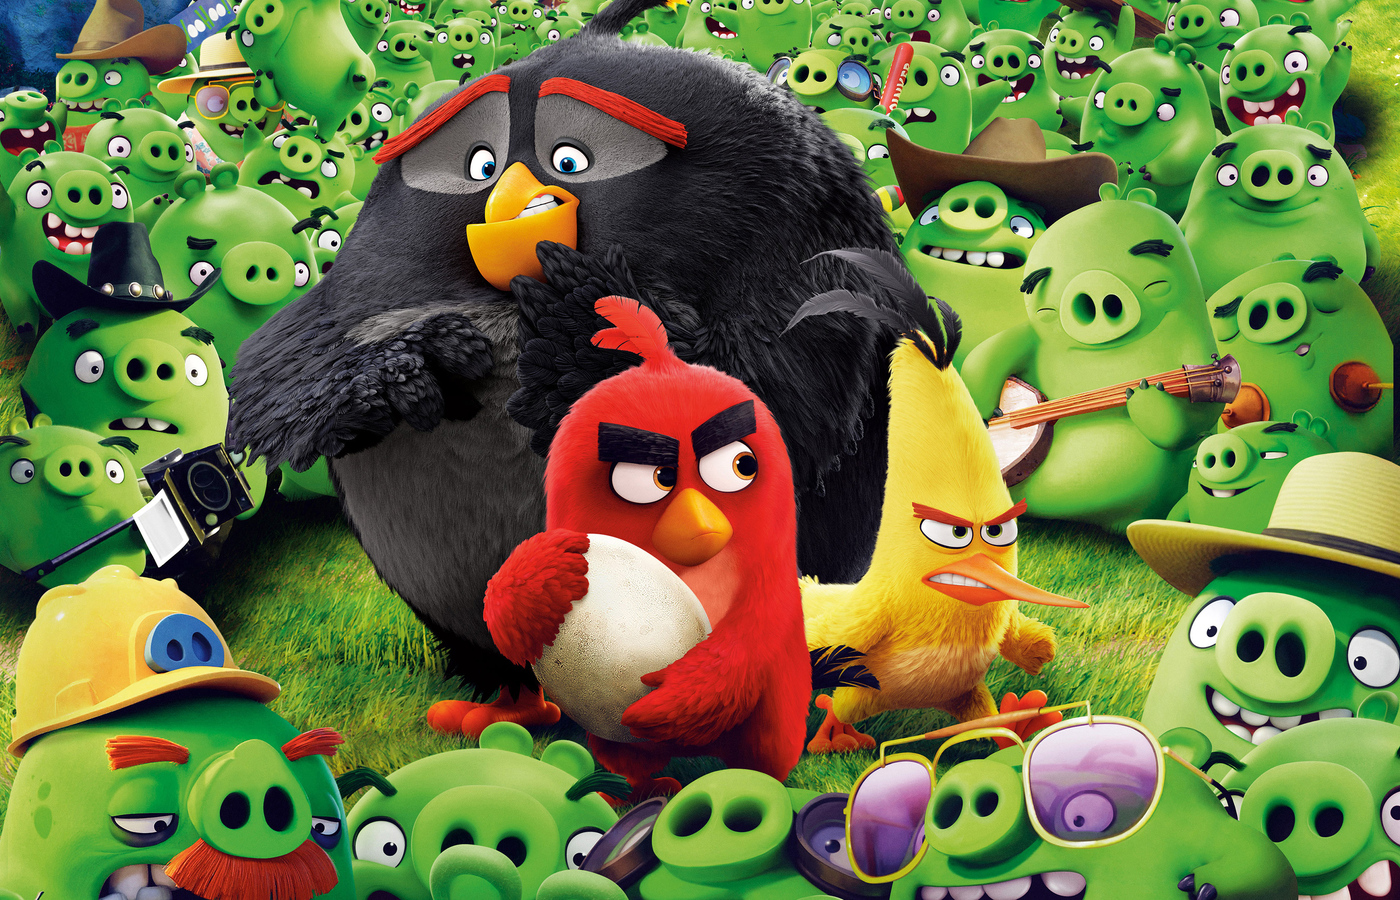 angry-birds-save-the-egg-4k-3w.jpg